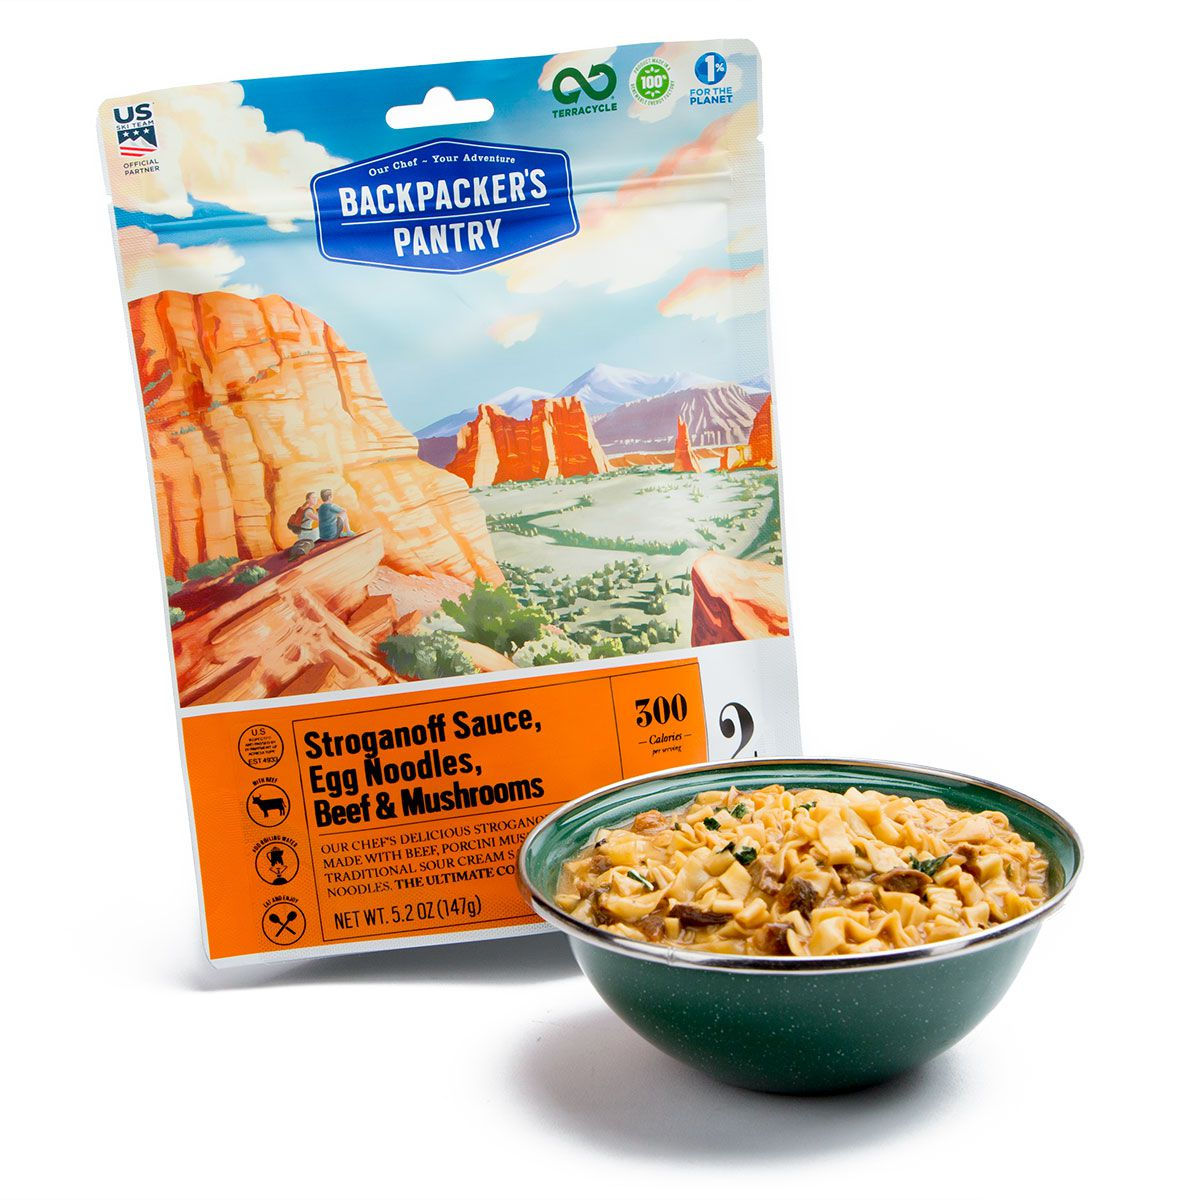 BP Beef and mushroom stroganoff bowl and pouch